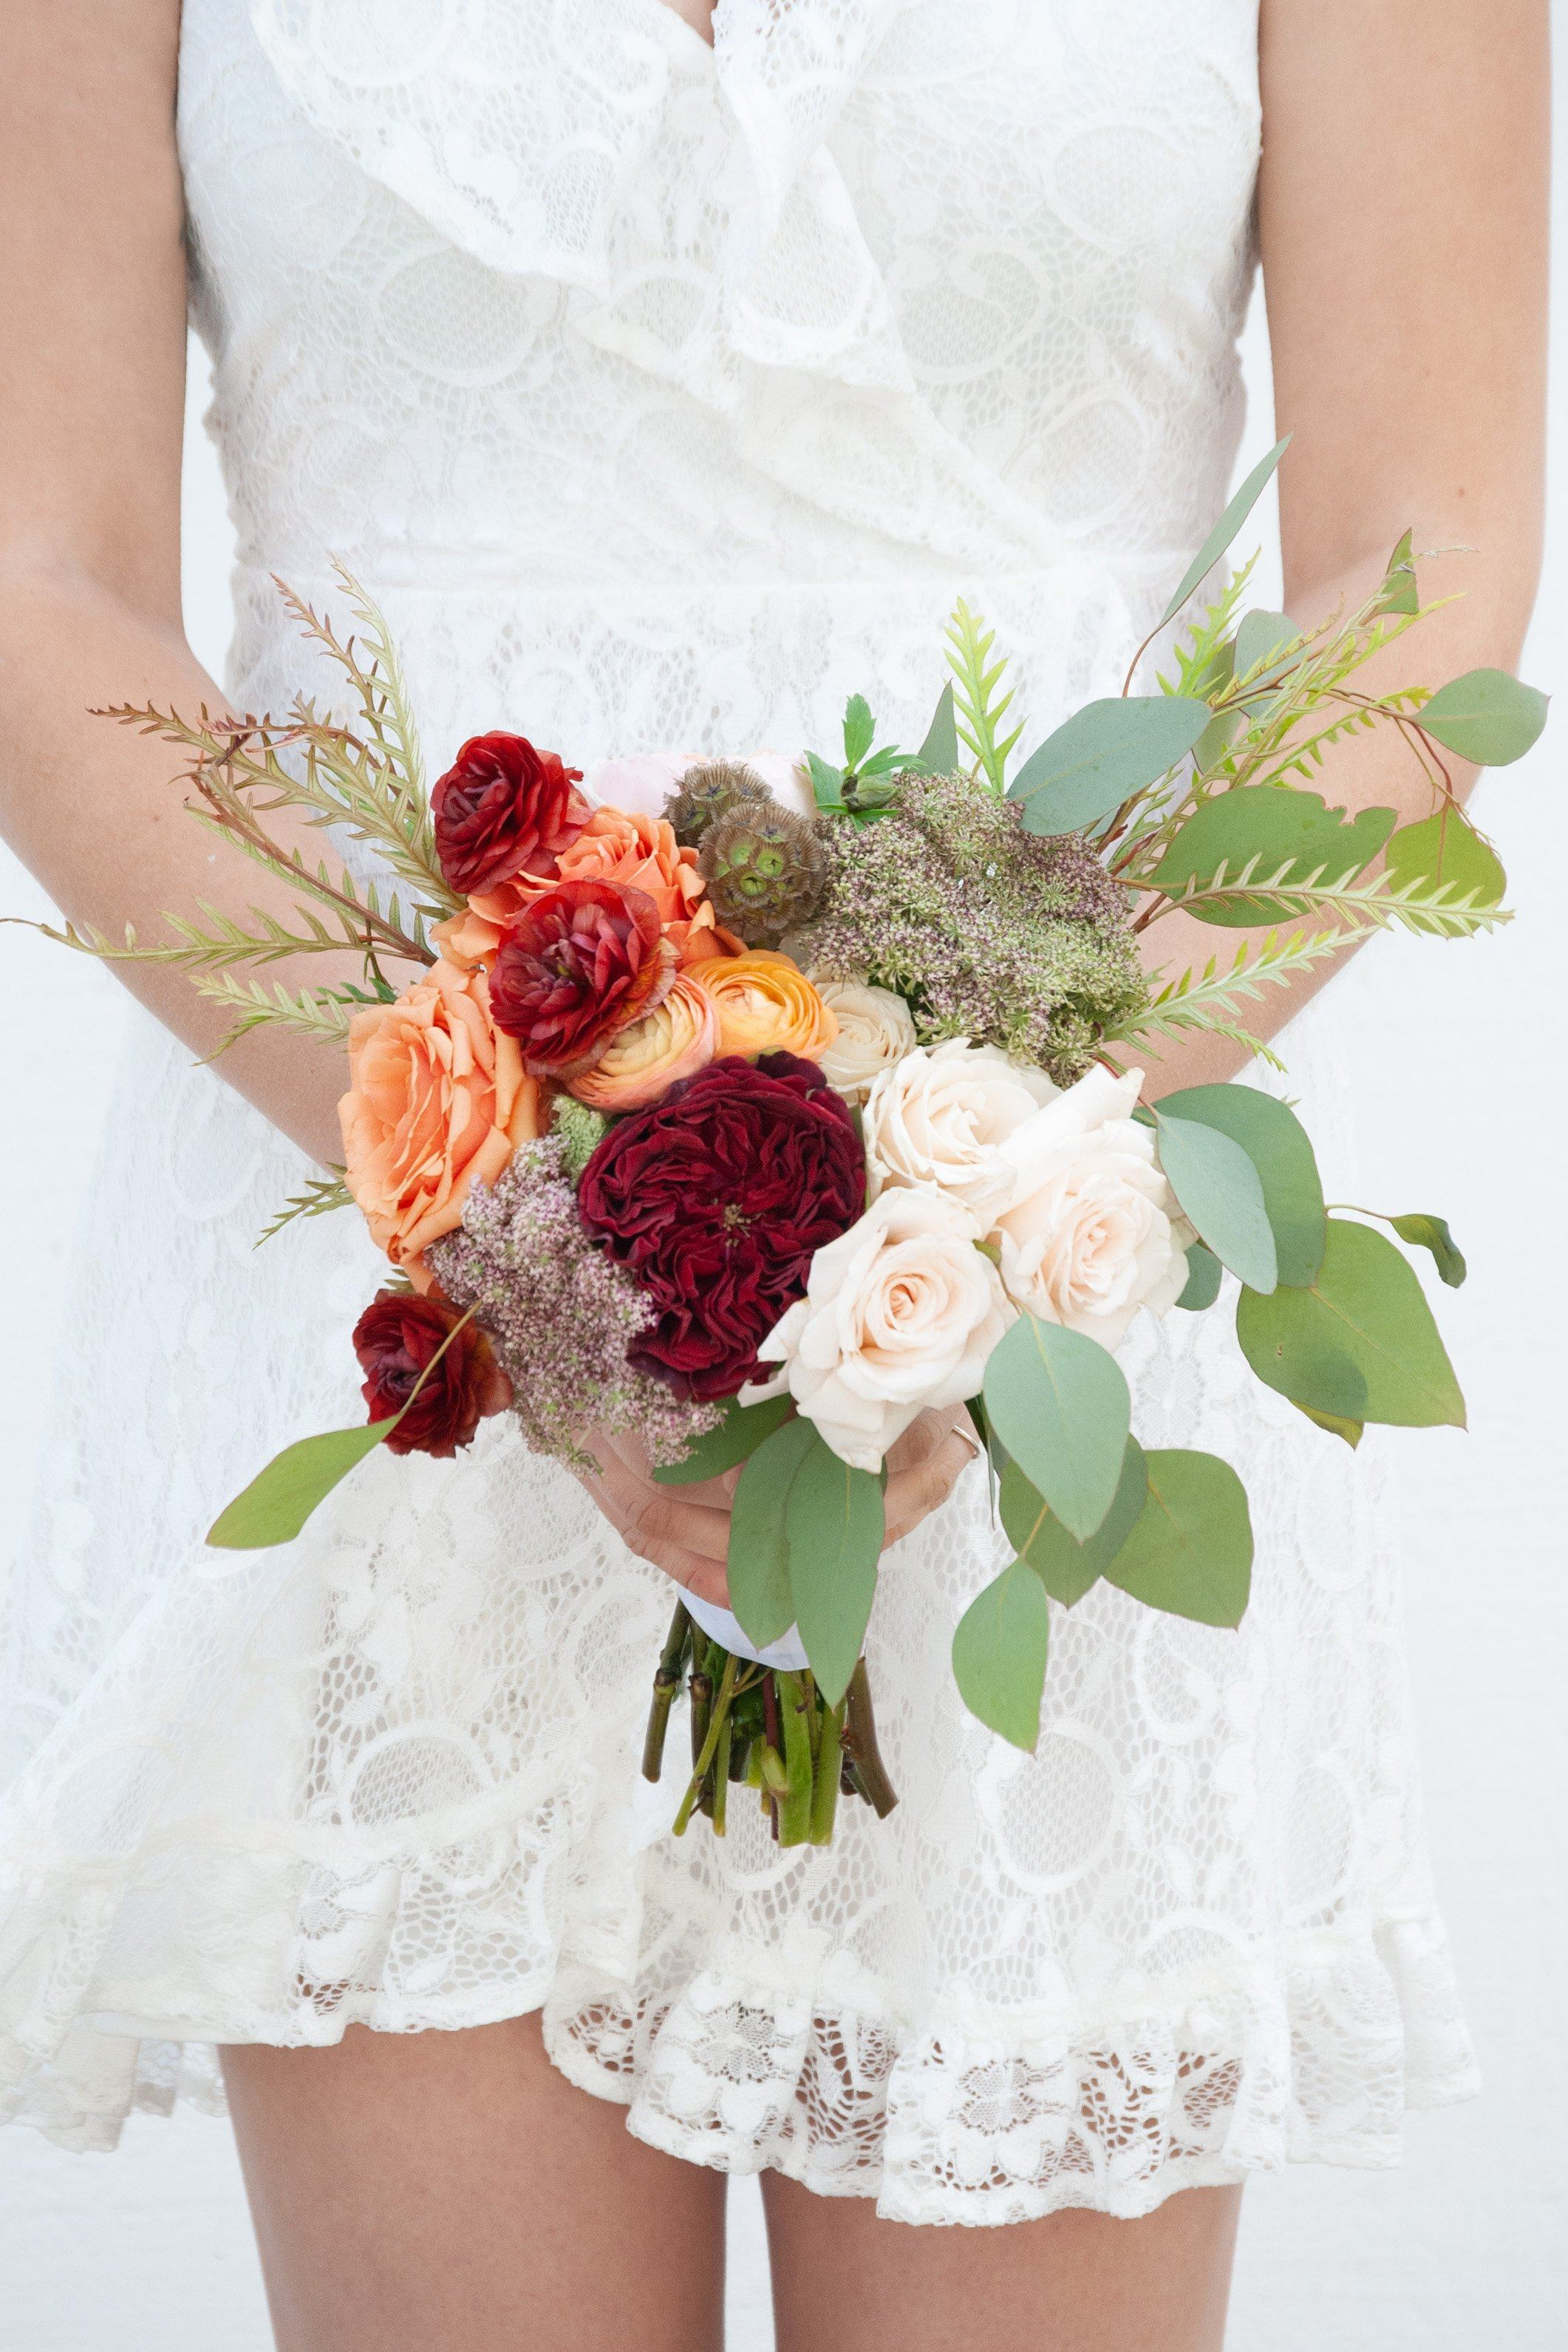 Autumn Bliss Bridal Bouquet